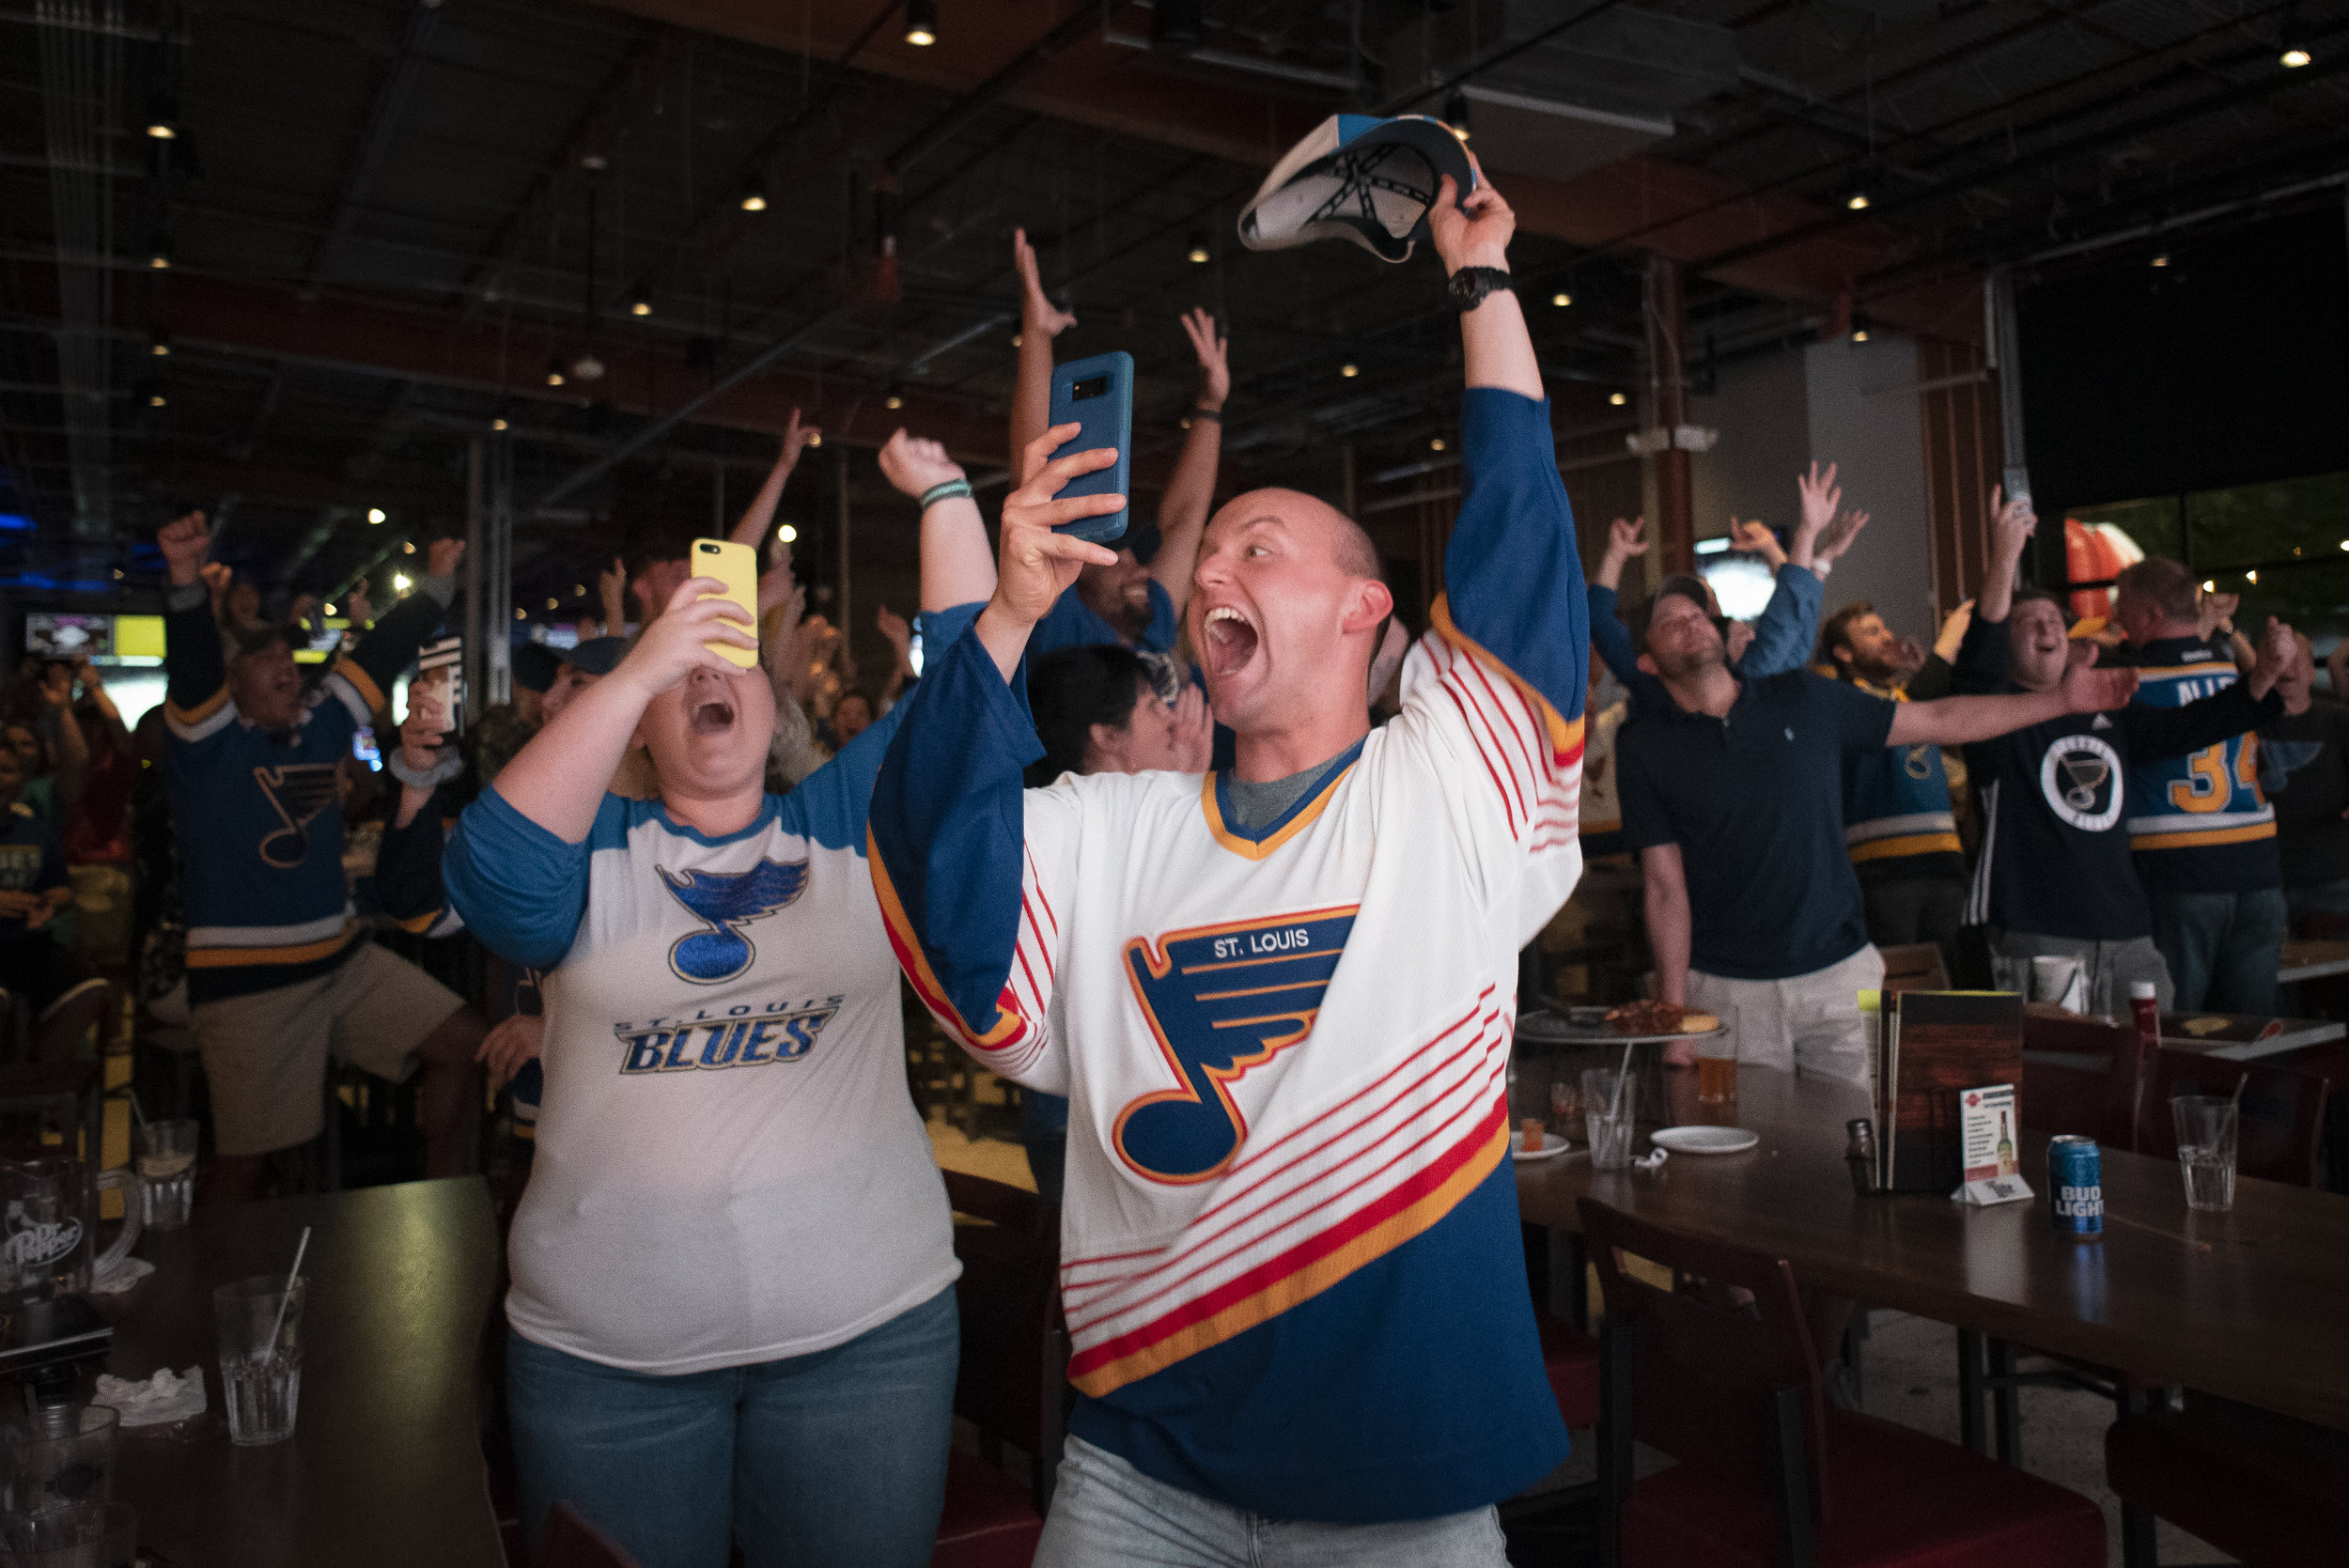 Chase Groshong of Troy, Missouri, and Madison Mingione of Perryville, Missouri, left, react to the St. Louis Blues claiming the Stanley Cup after defeating the Boston Bruins 4-1 in Game 7 on Wednesday, June 12, 2019, while watching the event at Dogwood Social House in Cape Girardeau. This was the first time the St. Louis Blues claimed the Stanley Cup in franchise history. Jacob Wiegand | Southeast Missourian